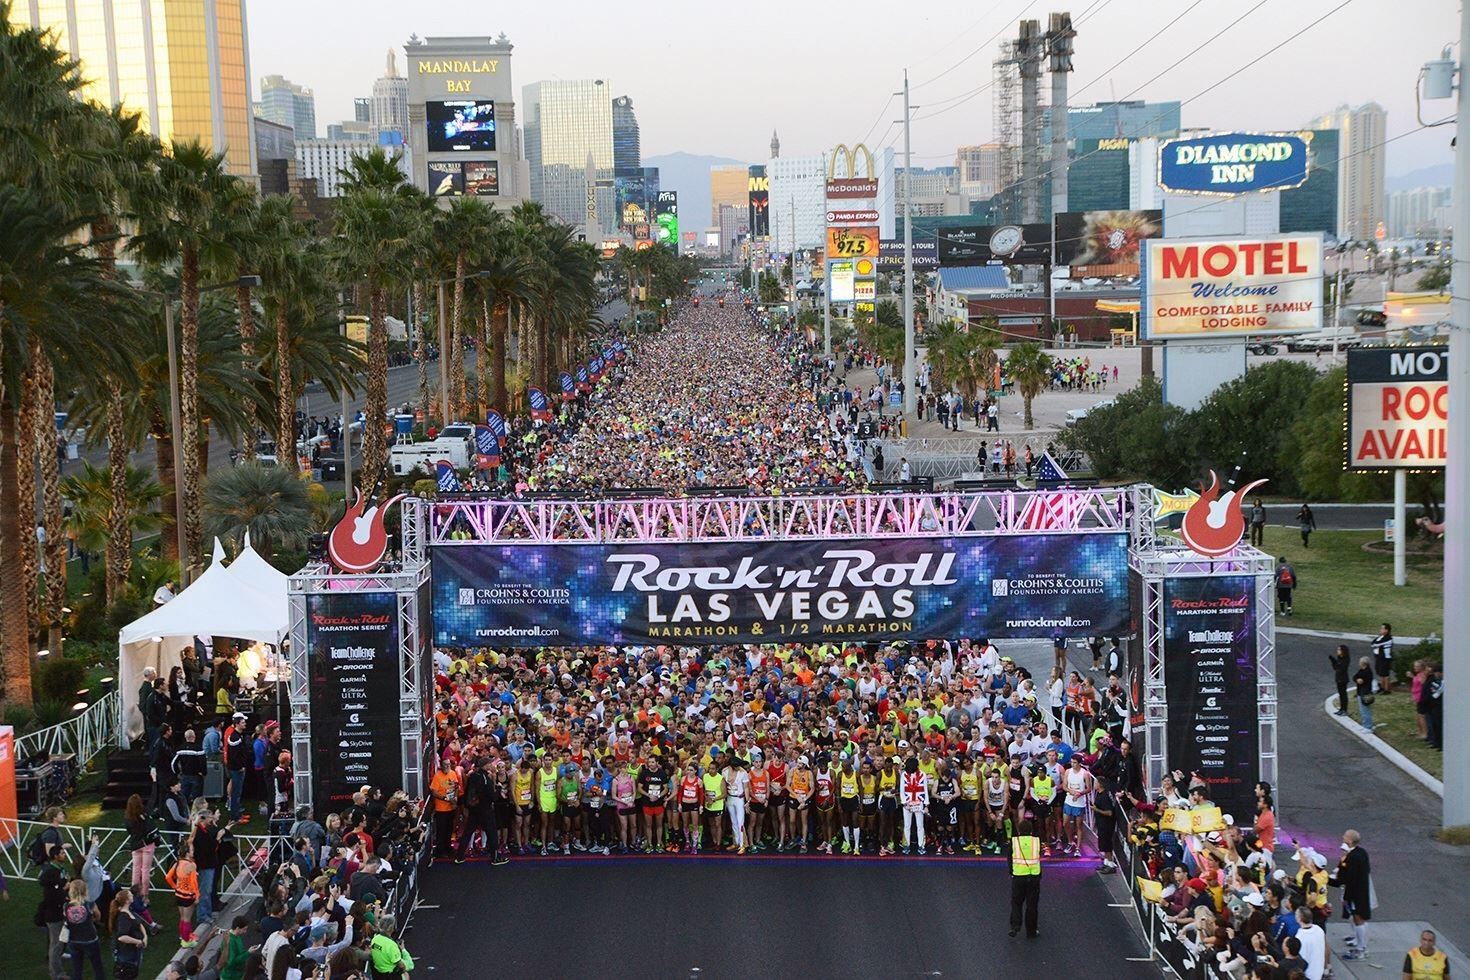 The 2020 Rock 'n' Roll Las Vegas Marathon has been postponed due to the pandemic